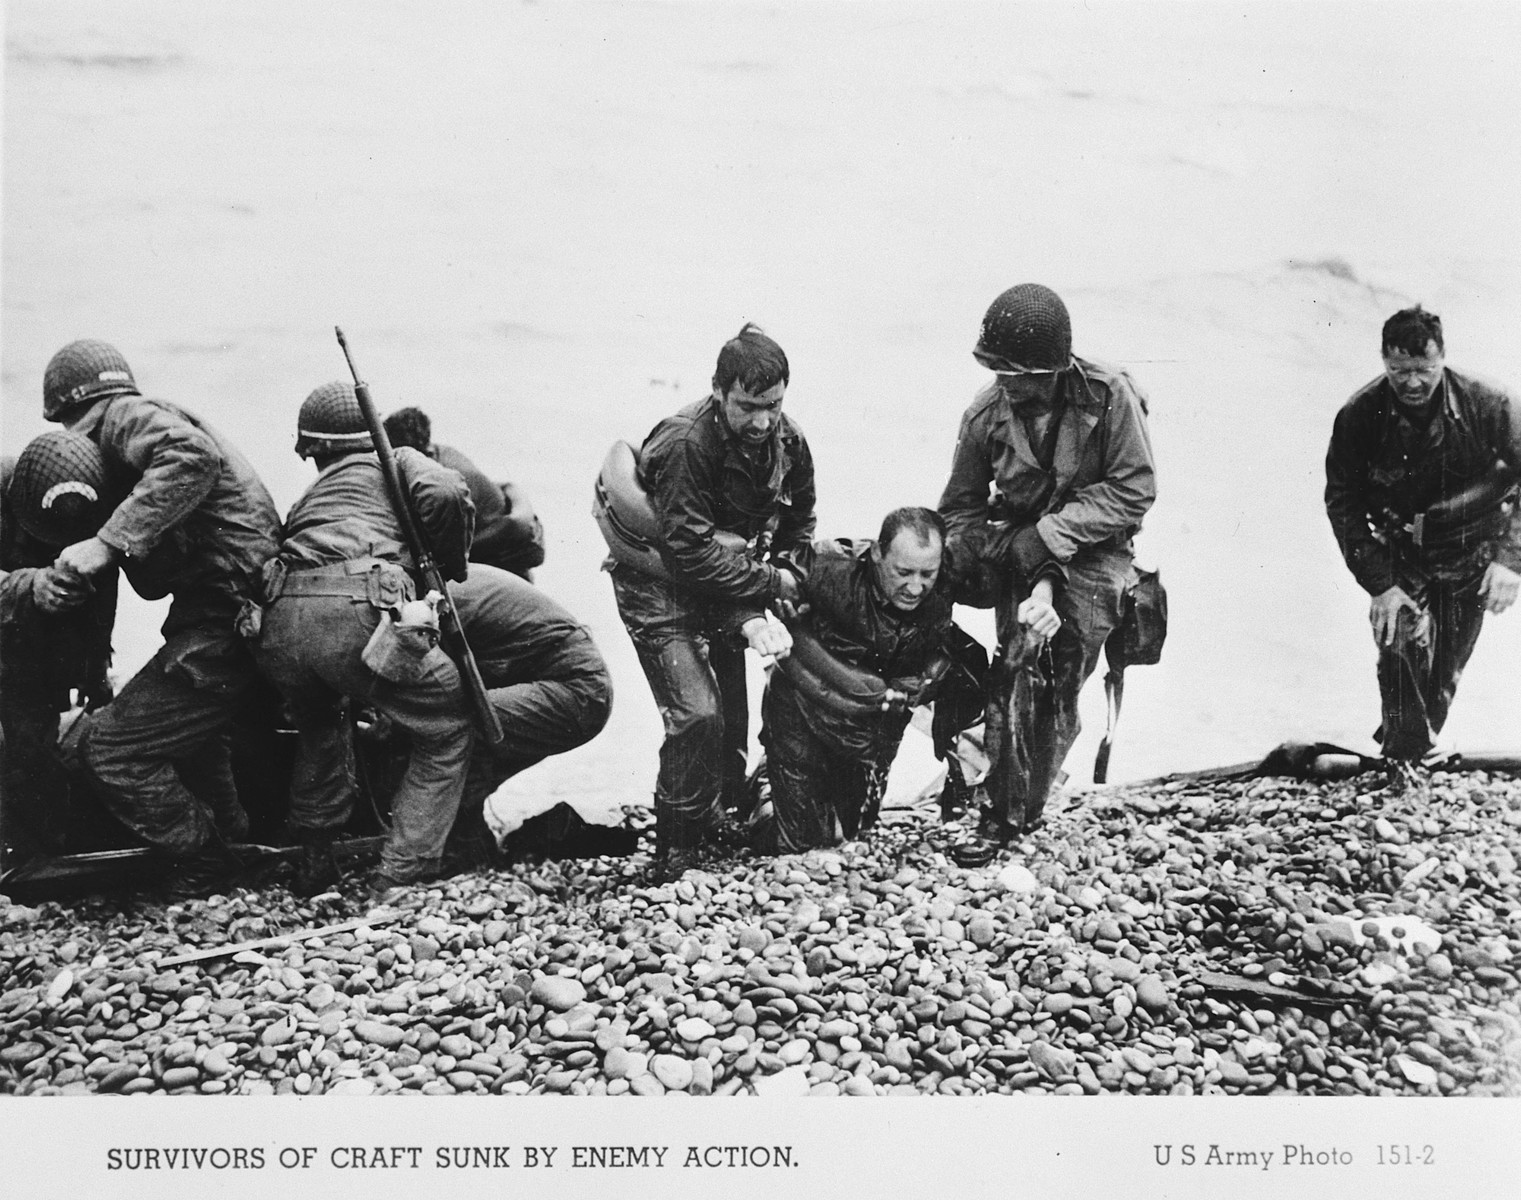 American troops pull the survivors of a sunken craft on to the shores of the Normandy beaches.